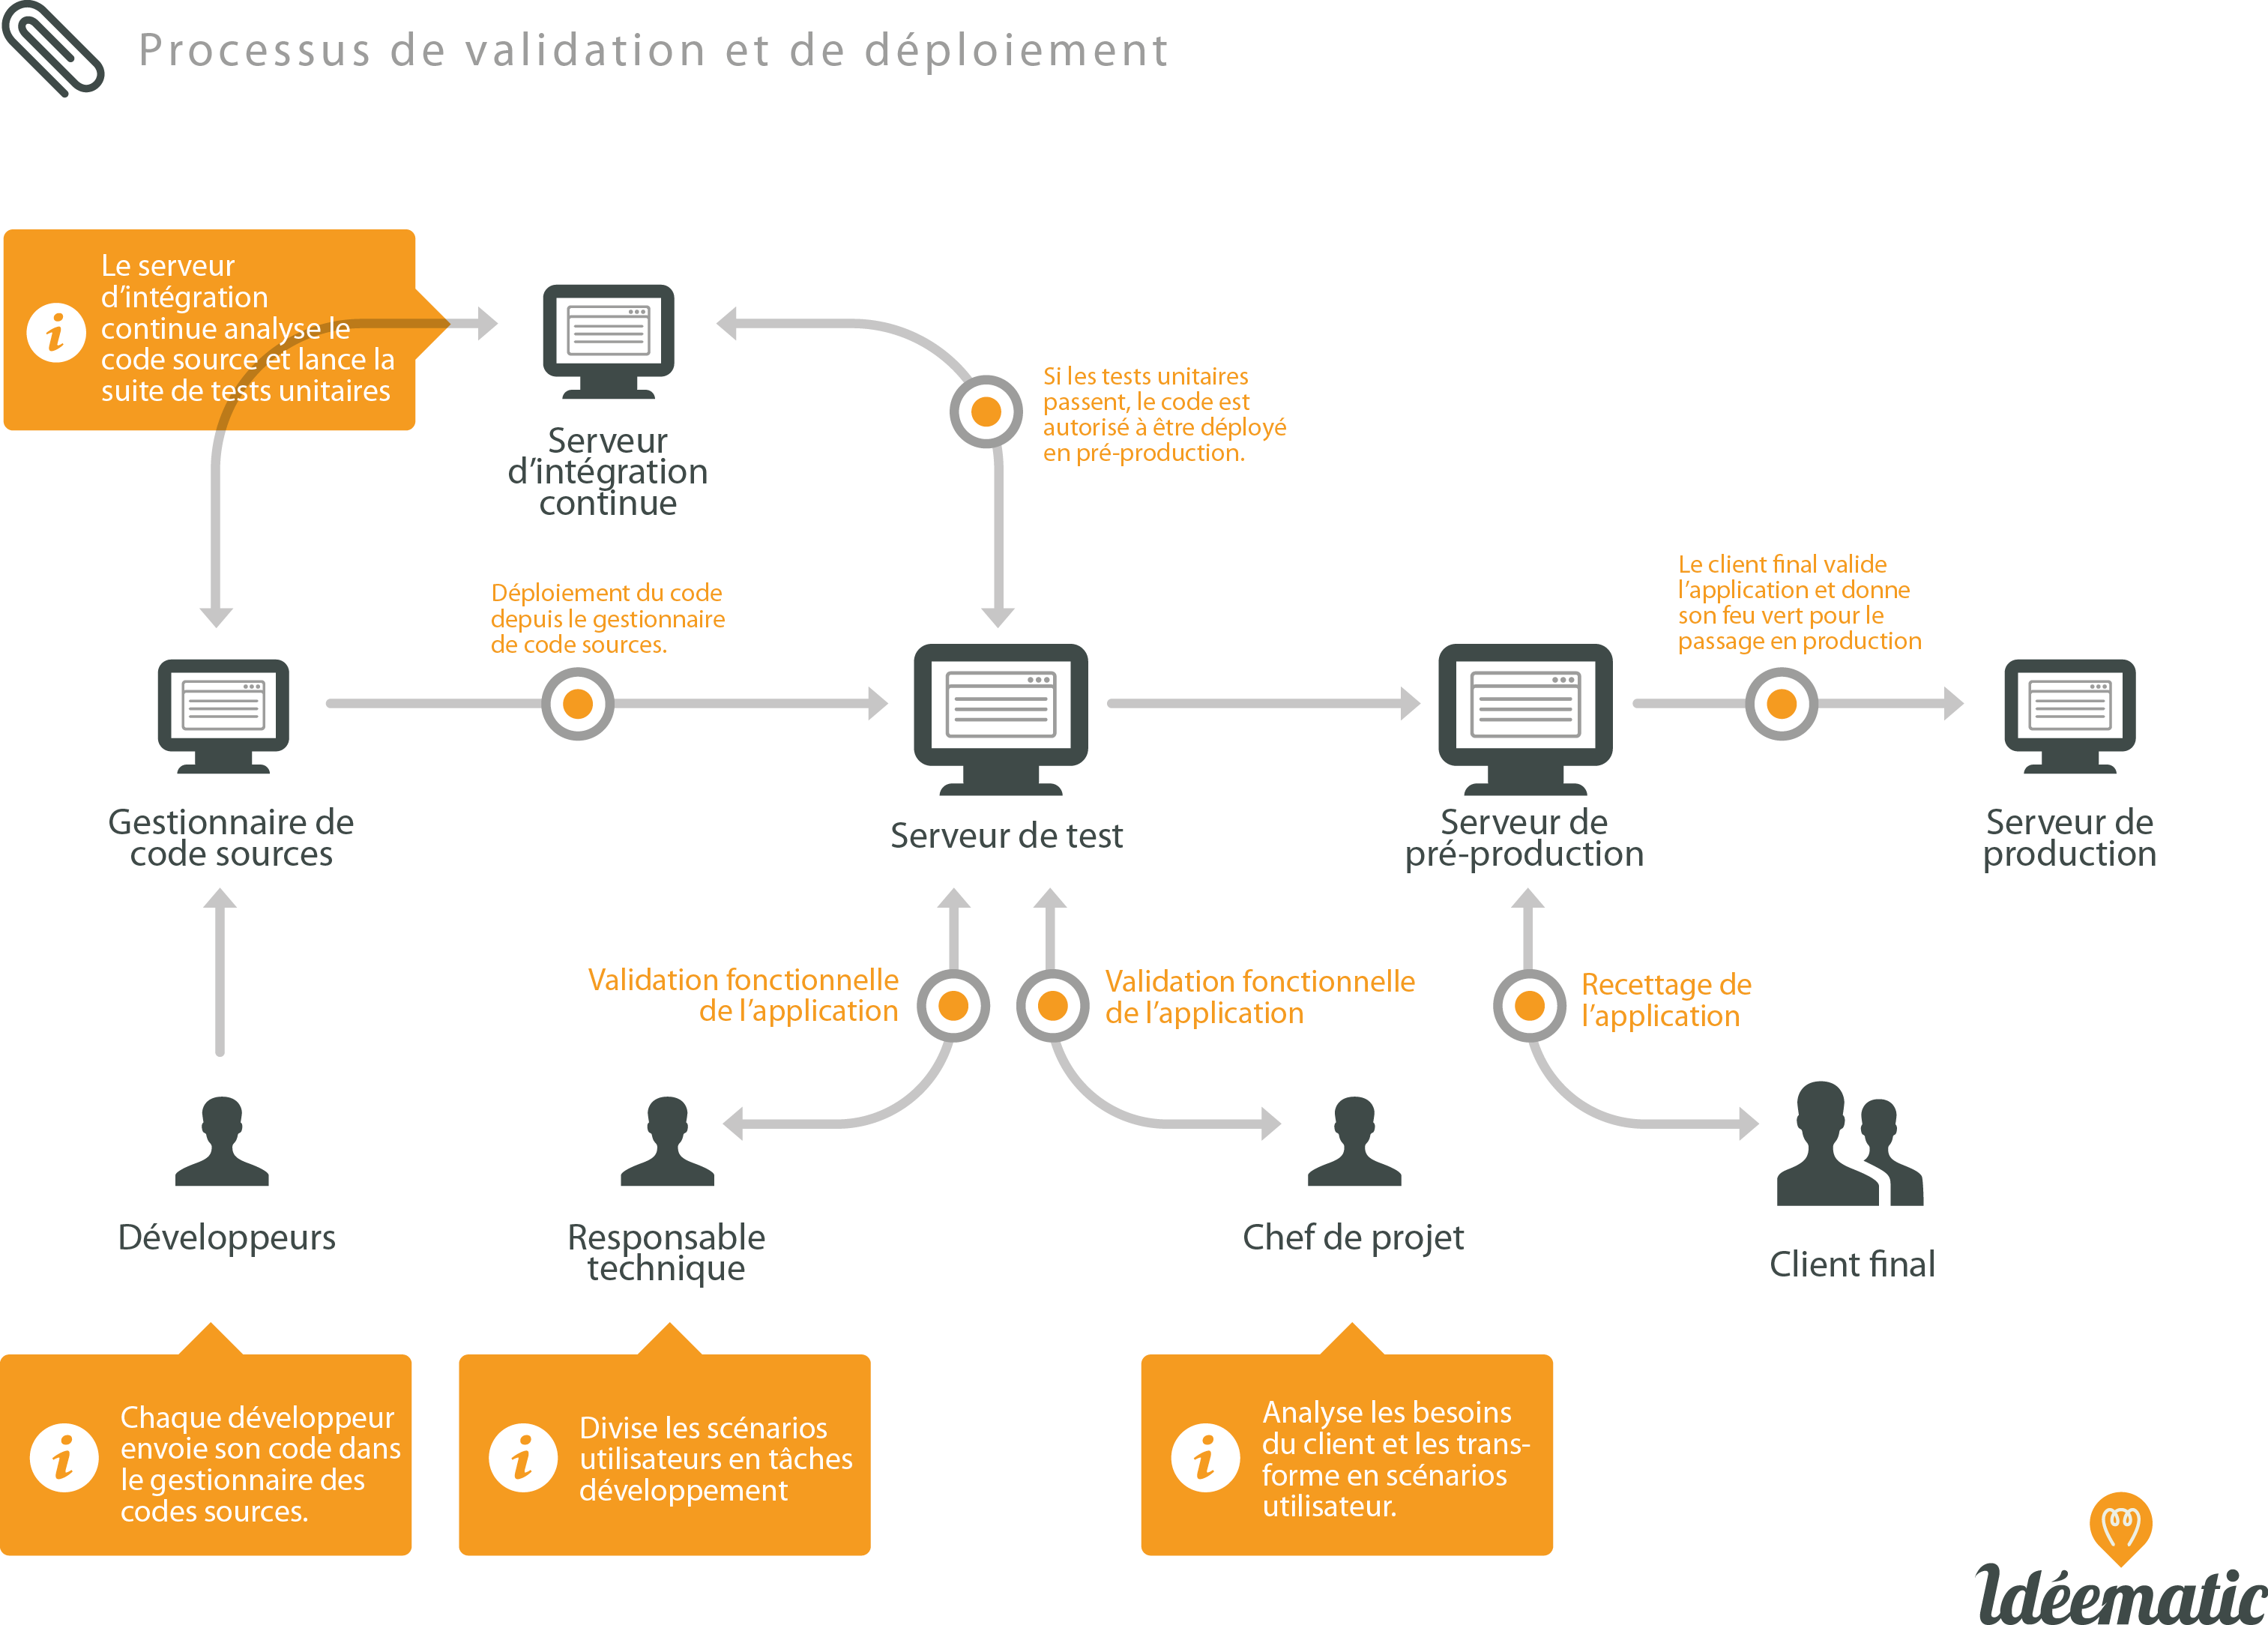 processus de validation chez idéematic